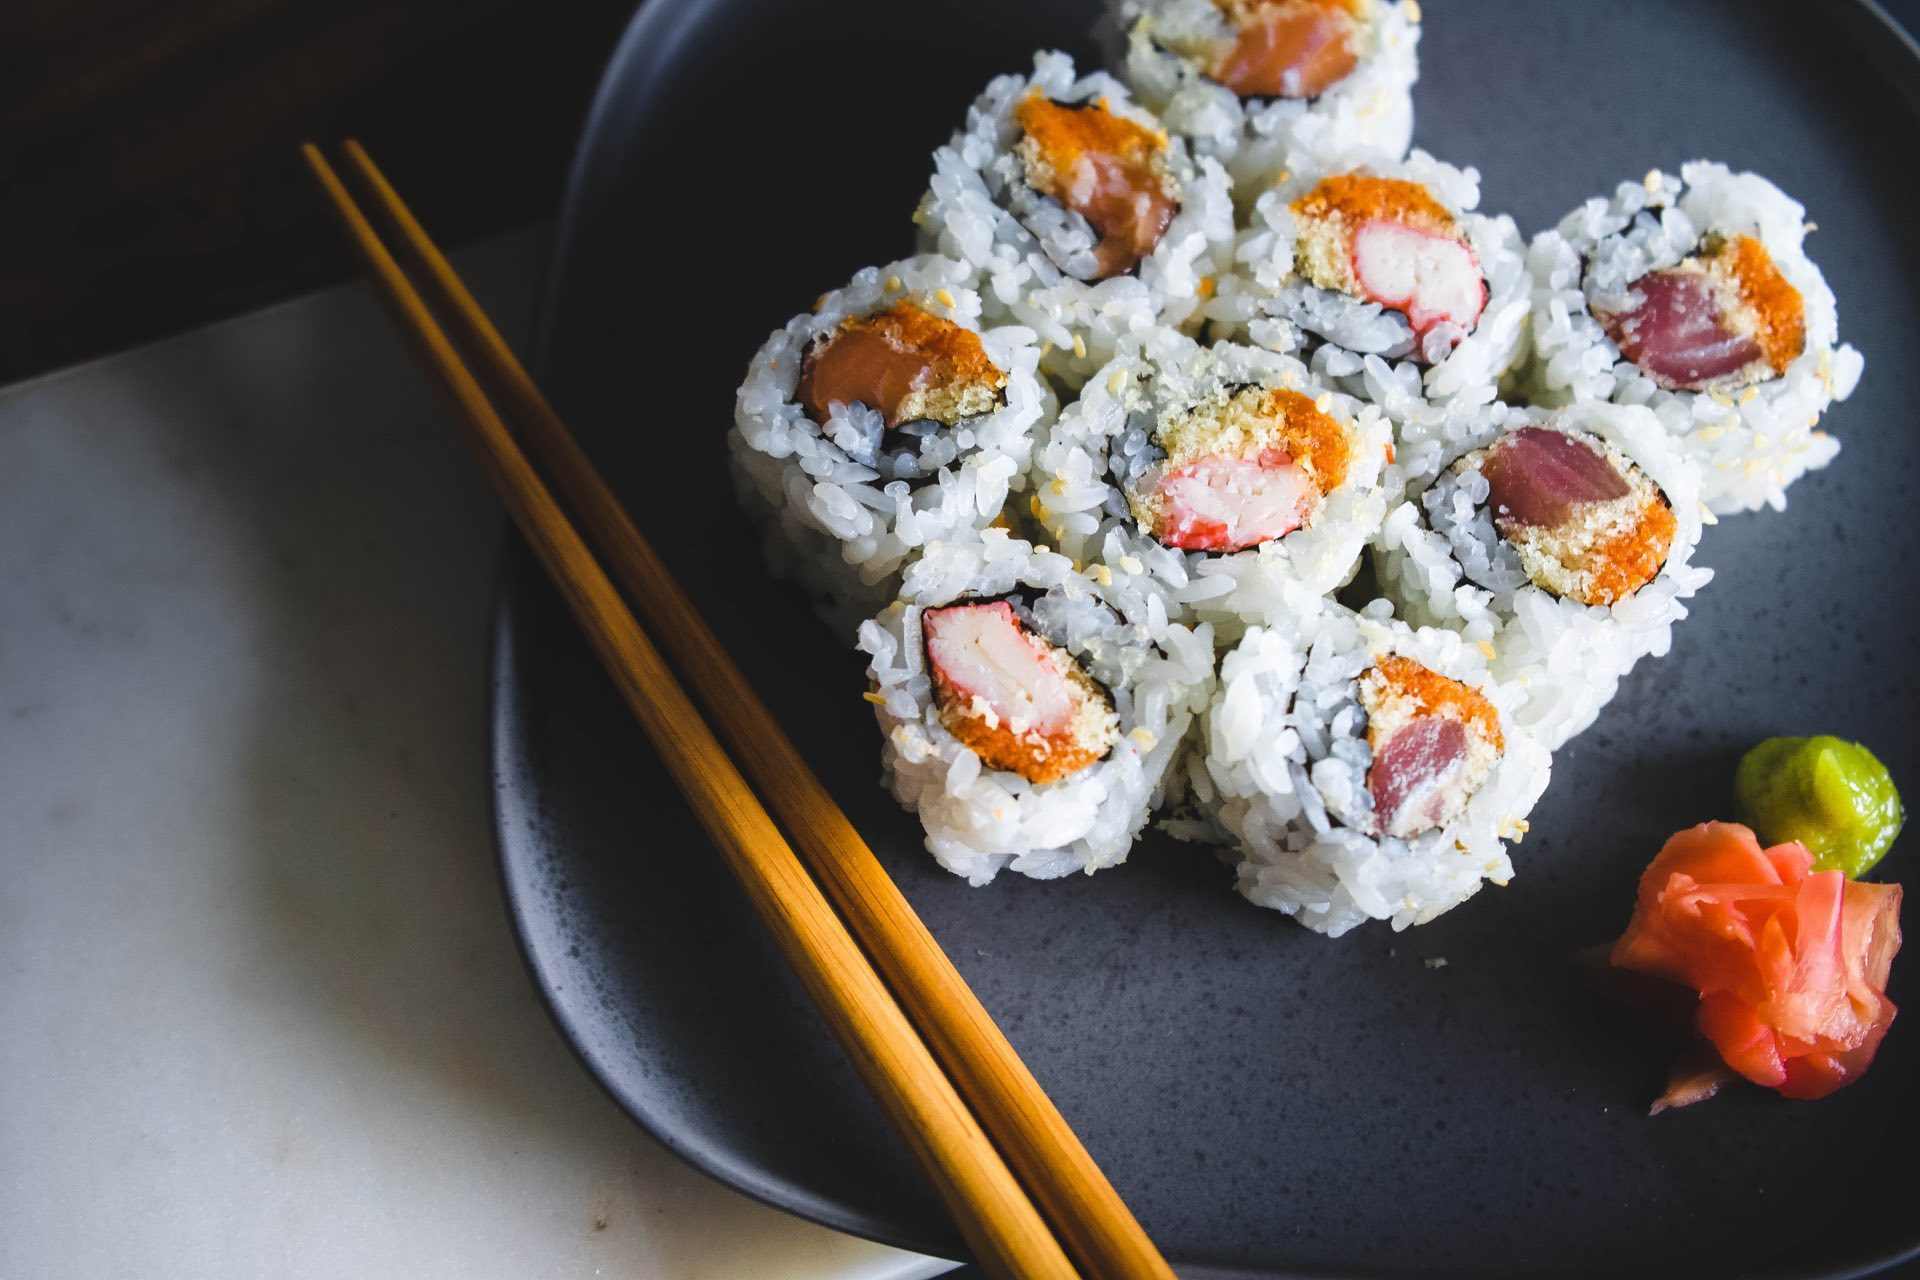 Satisfy a Craving for Japanese Fare at Nori & Wasabi